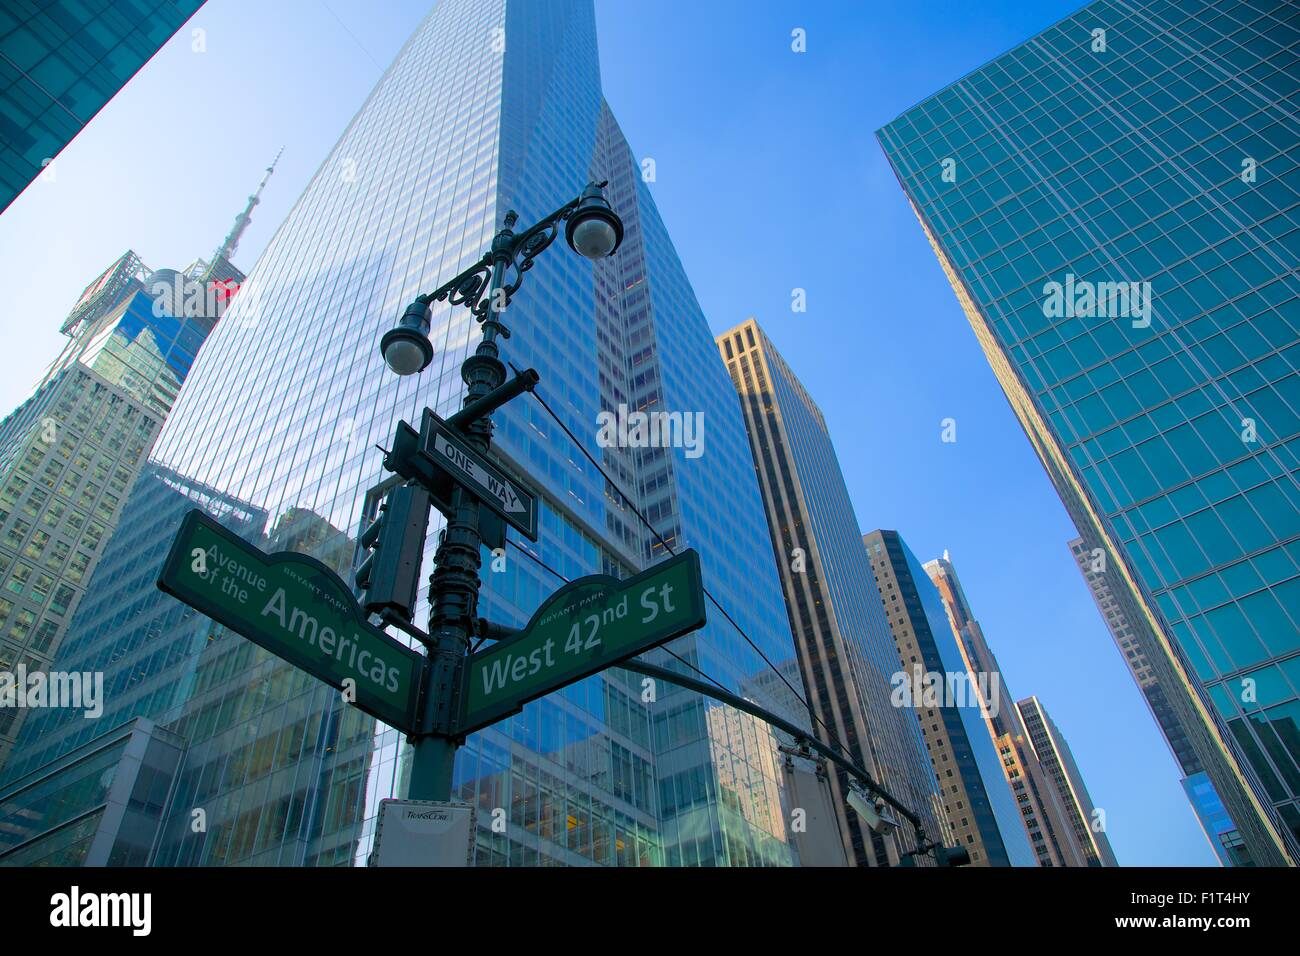 Avenue of the Americas and West 42nd Street signs, New York, United States of America, North America - Stock Image